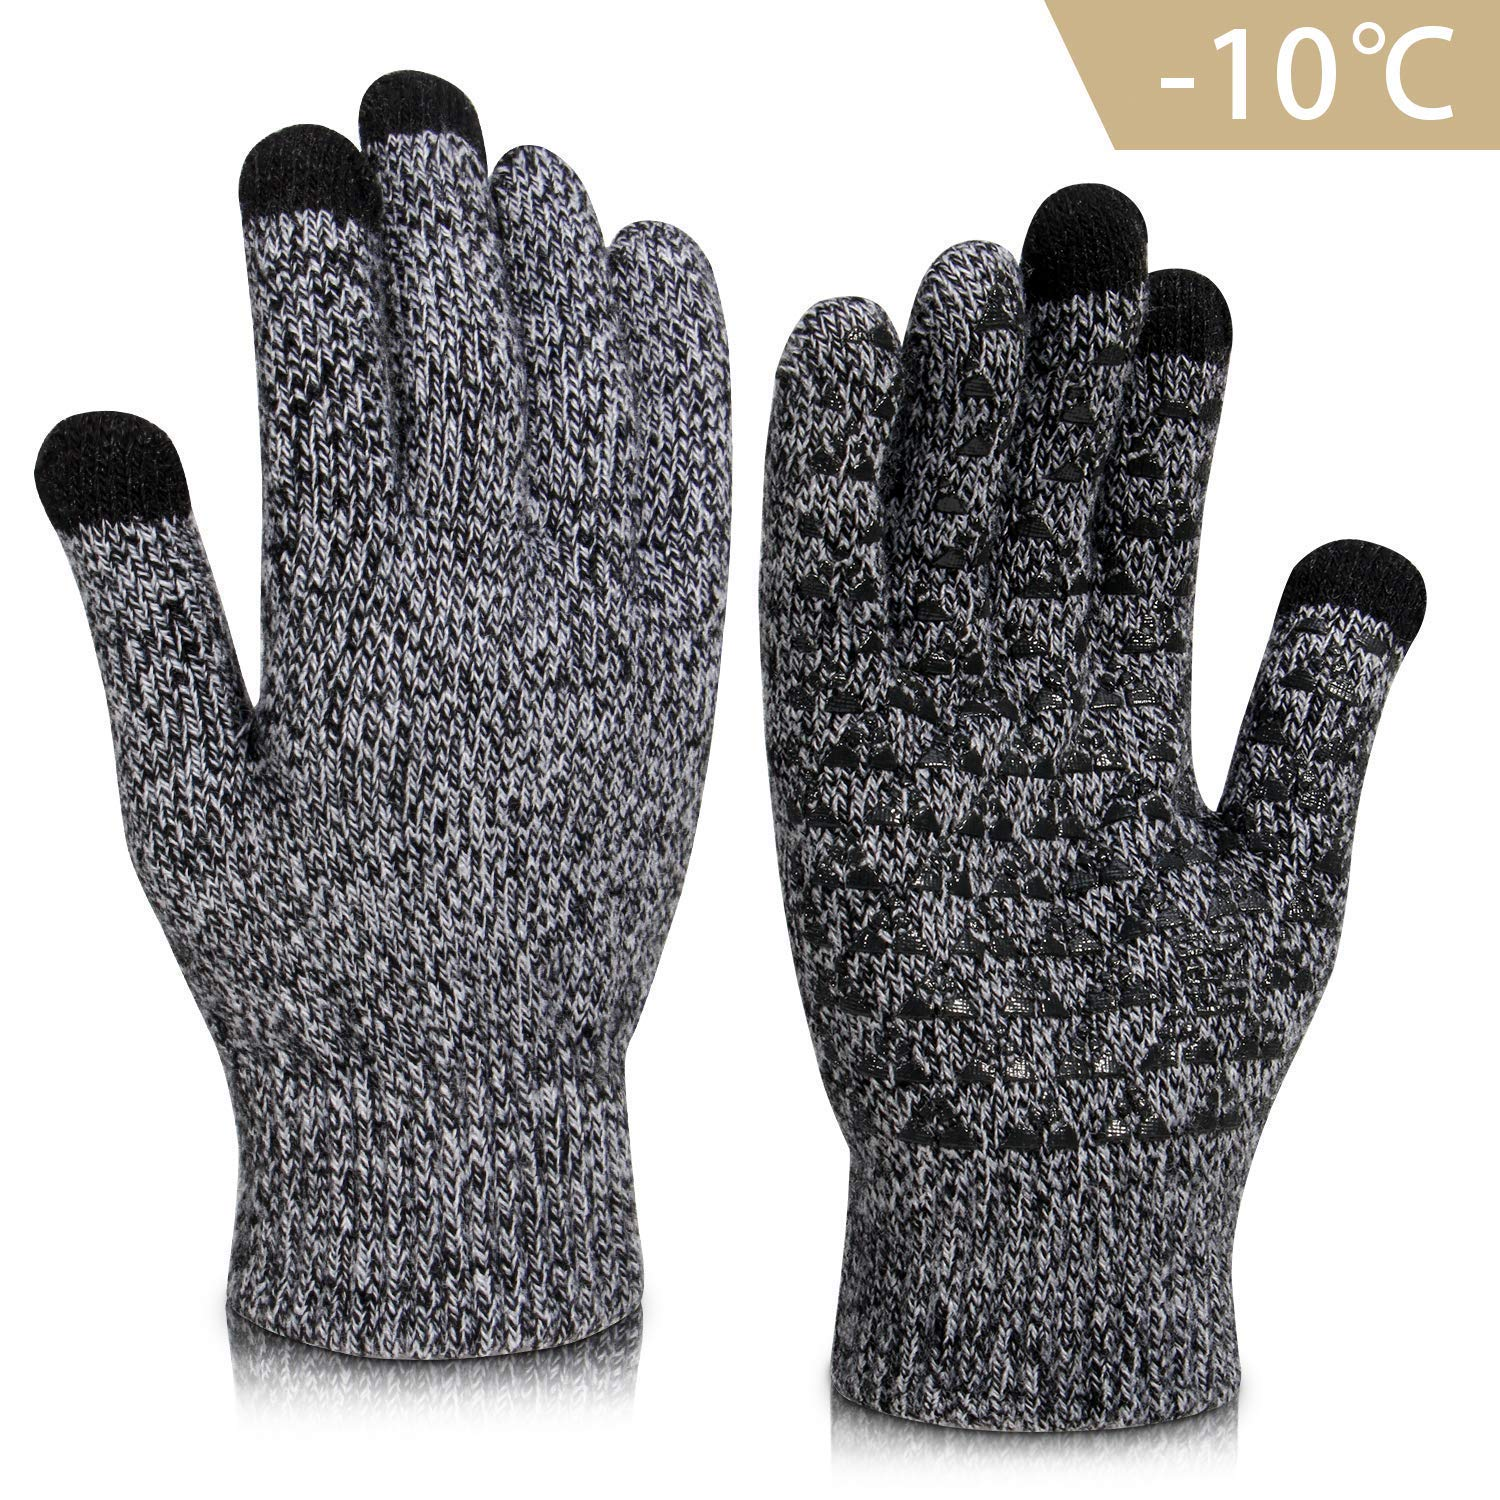 Vetoo Winter Gloves for Women and Men Knit Touch Screen Anti Slip Silicone Gel Warm Glove Elastic Cuff Thermal Soft Wool Lining Stretch Material